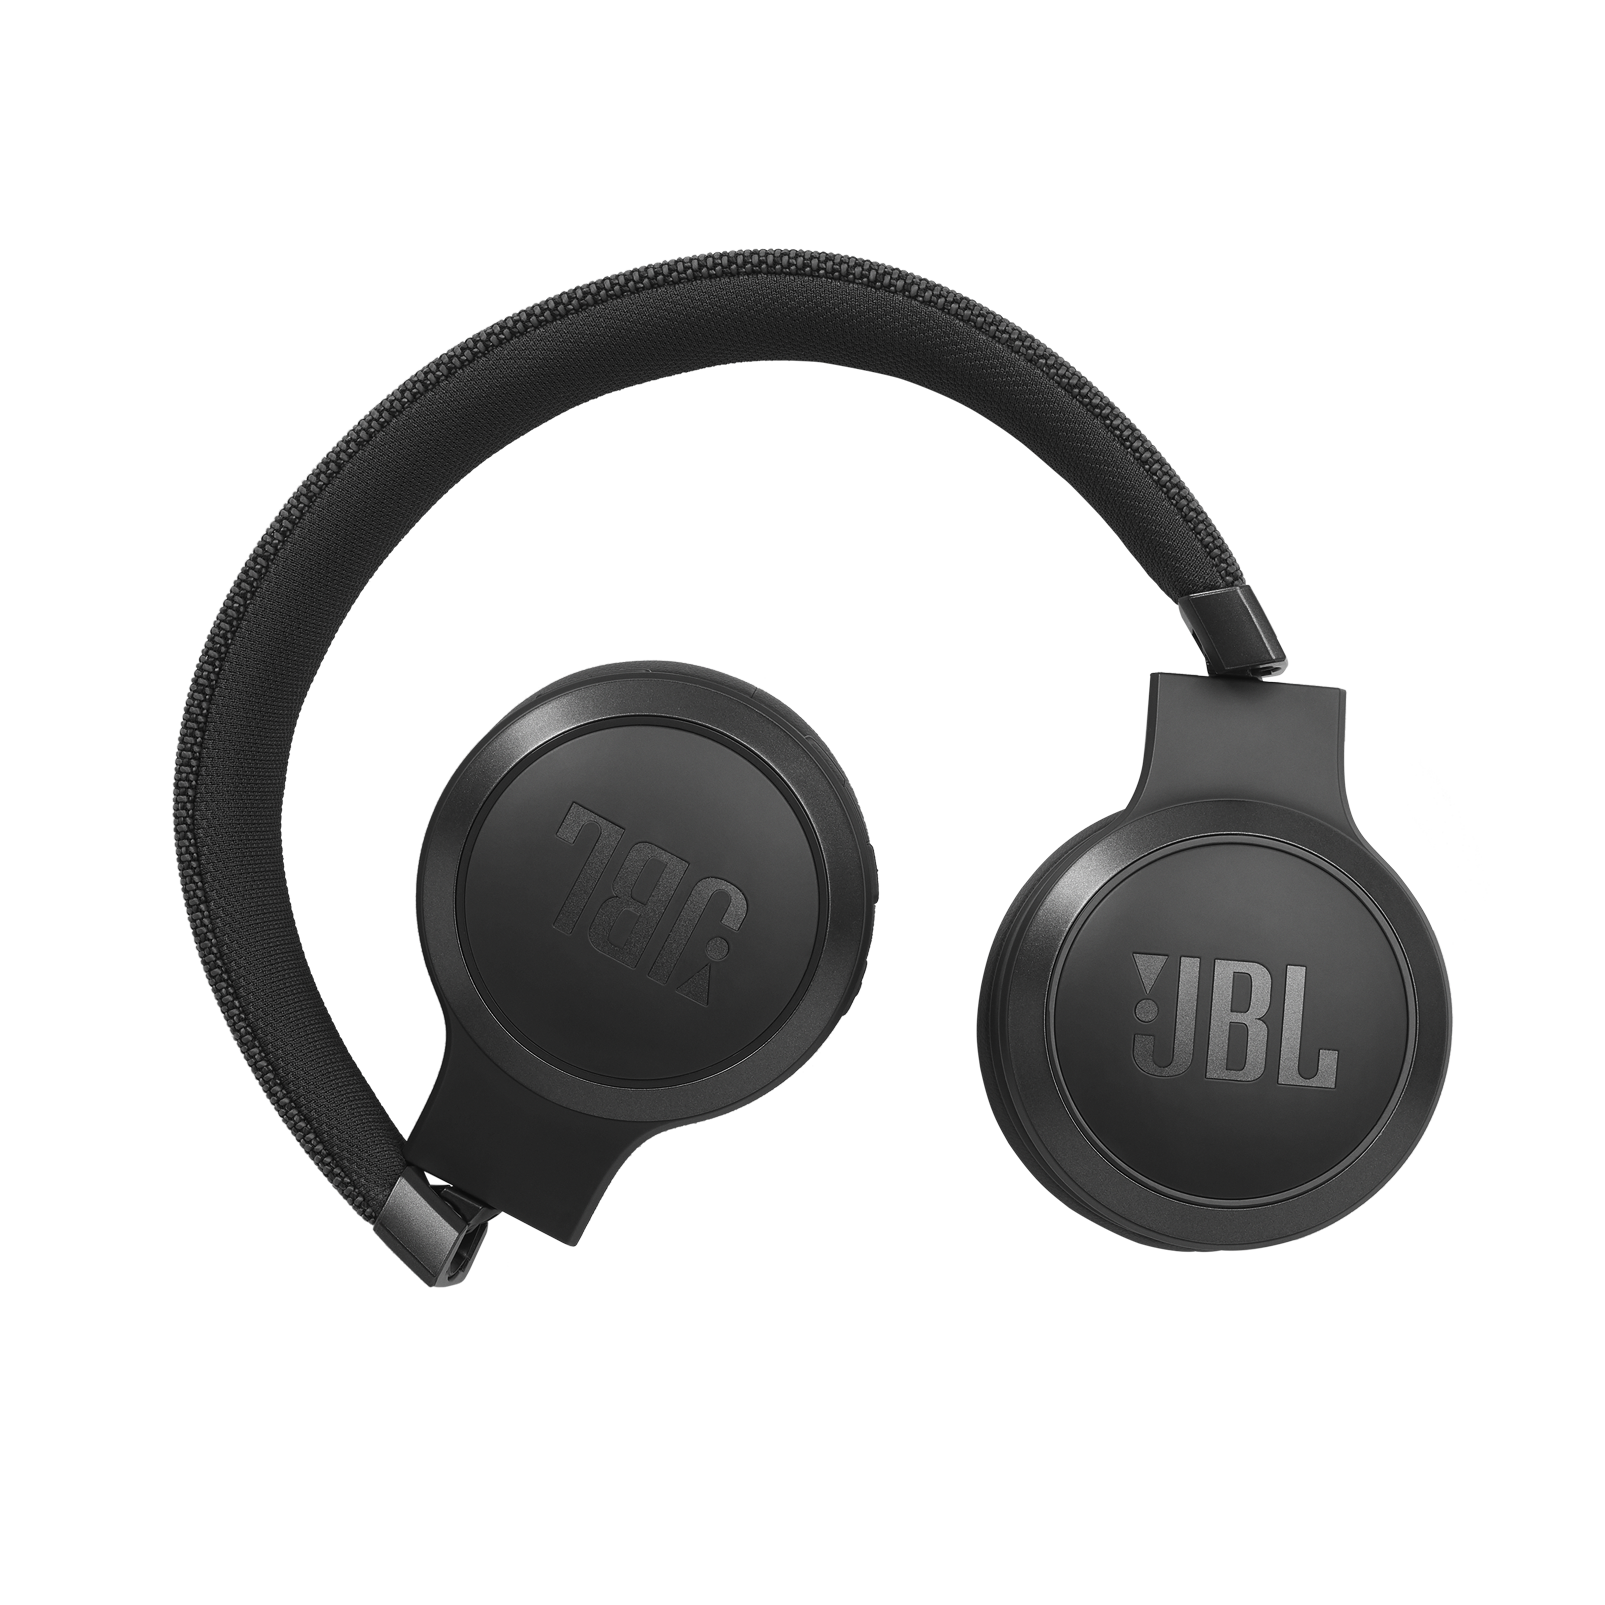 JBL Live 460NC - Black - WIRELESS ON-EAR NC HEADPHONES - Detailshot 2